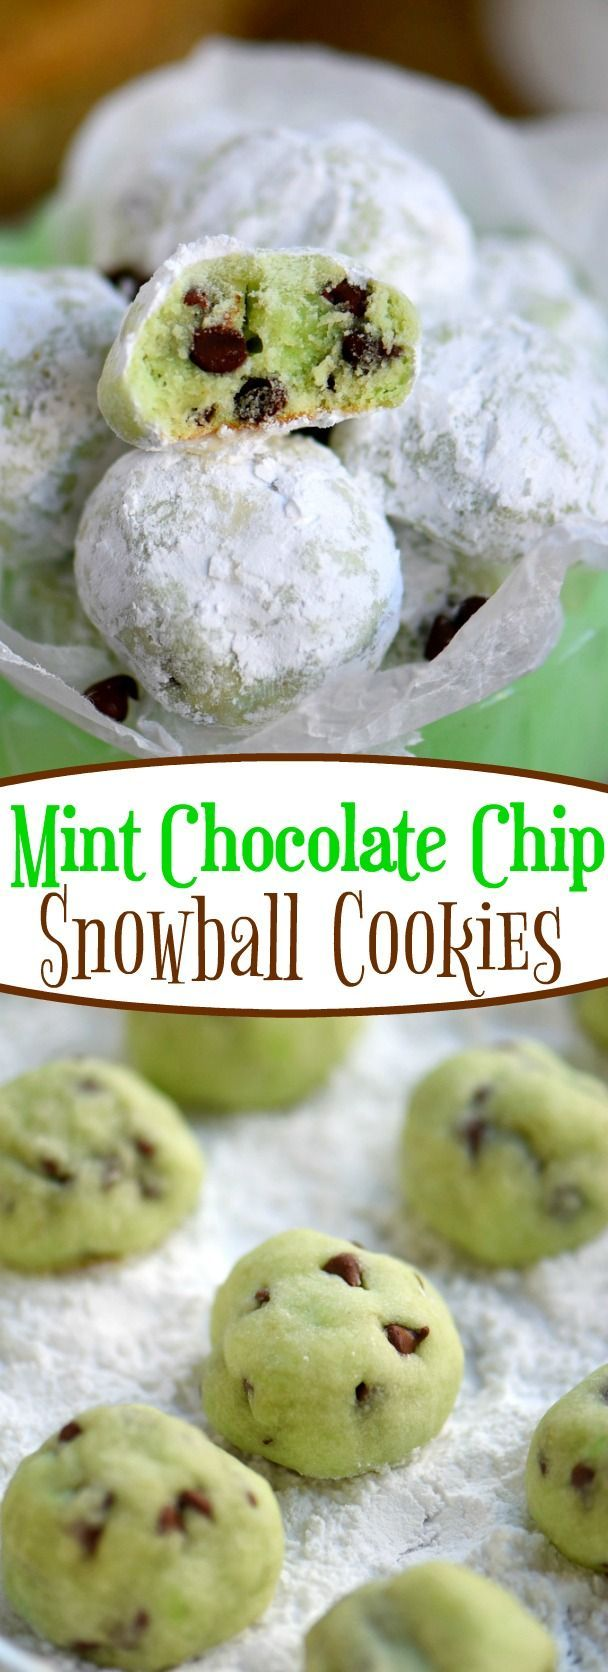 Melt in your mouth Mint Chocolate Chip Snowball Cookies are a treat you won't be able to resist! So easy to make and packed with mint and chocolate flavor - no one can eat just one! Perfect for St. Patrick's Day, Easter, Christmas and more! // Mom On Timeout